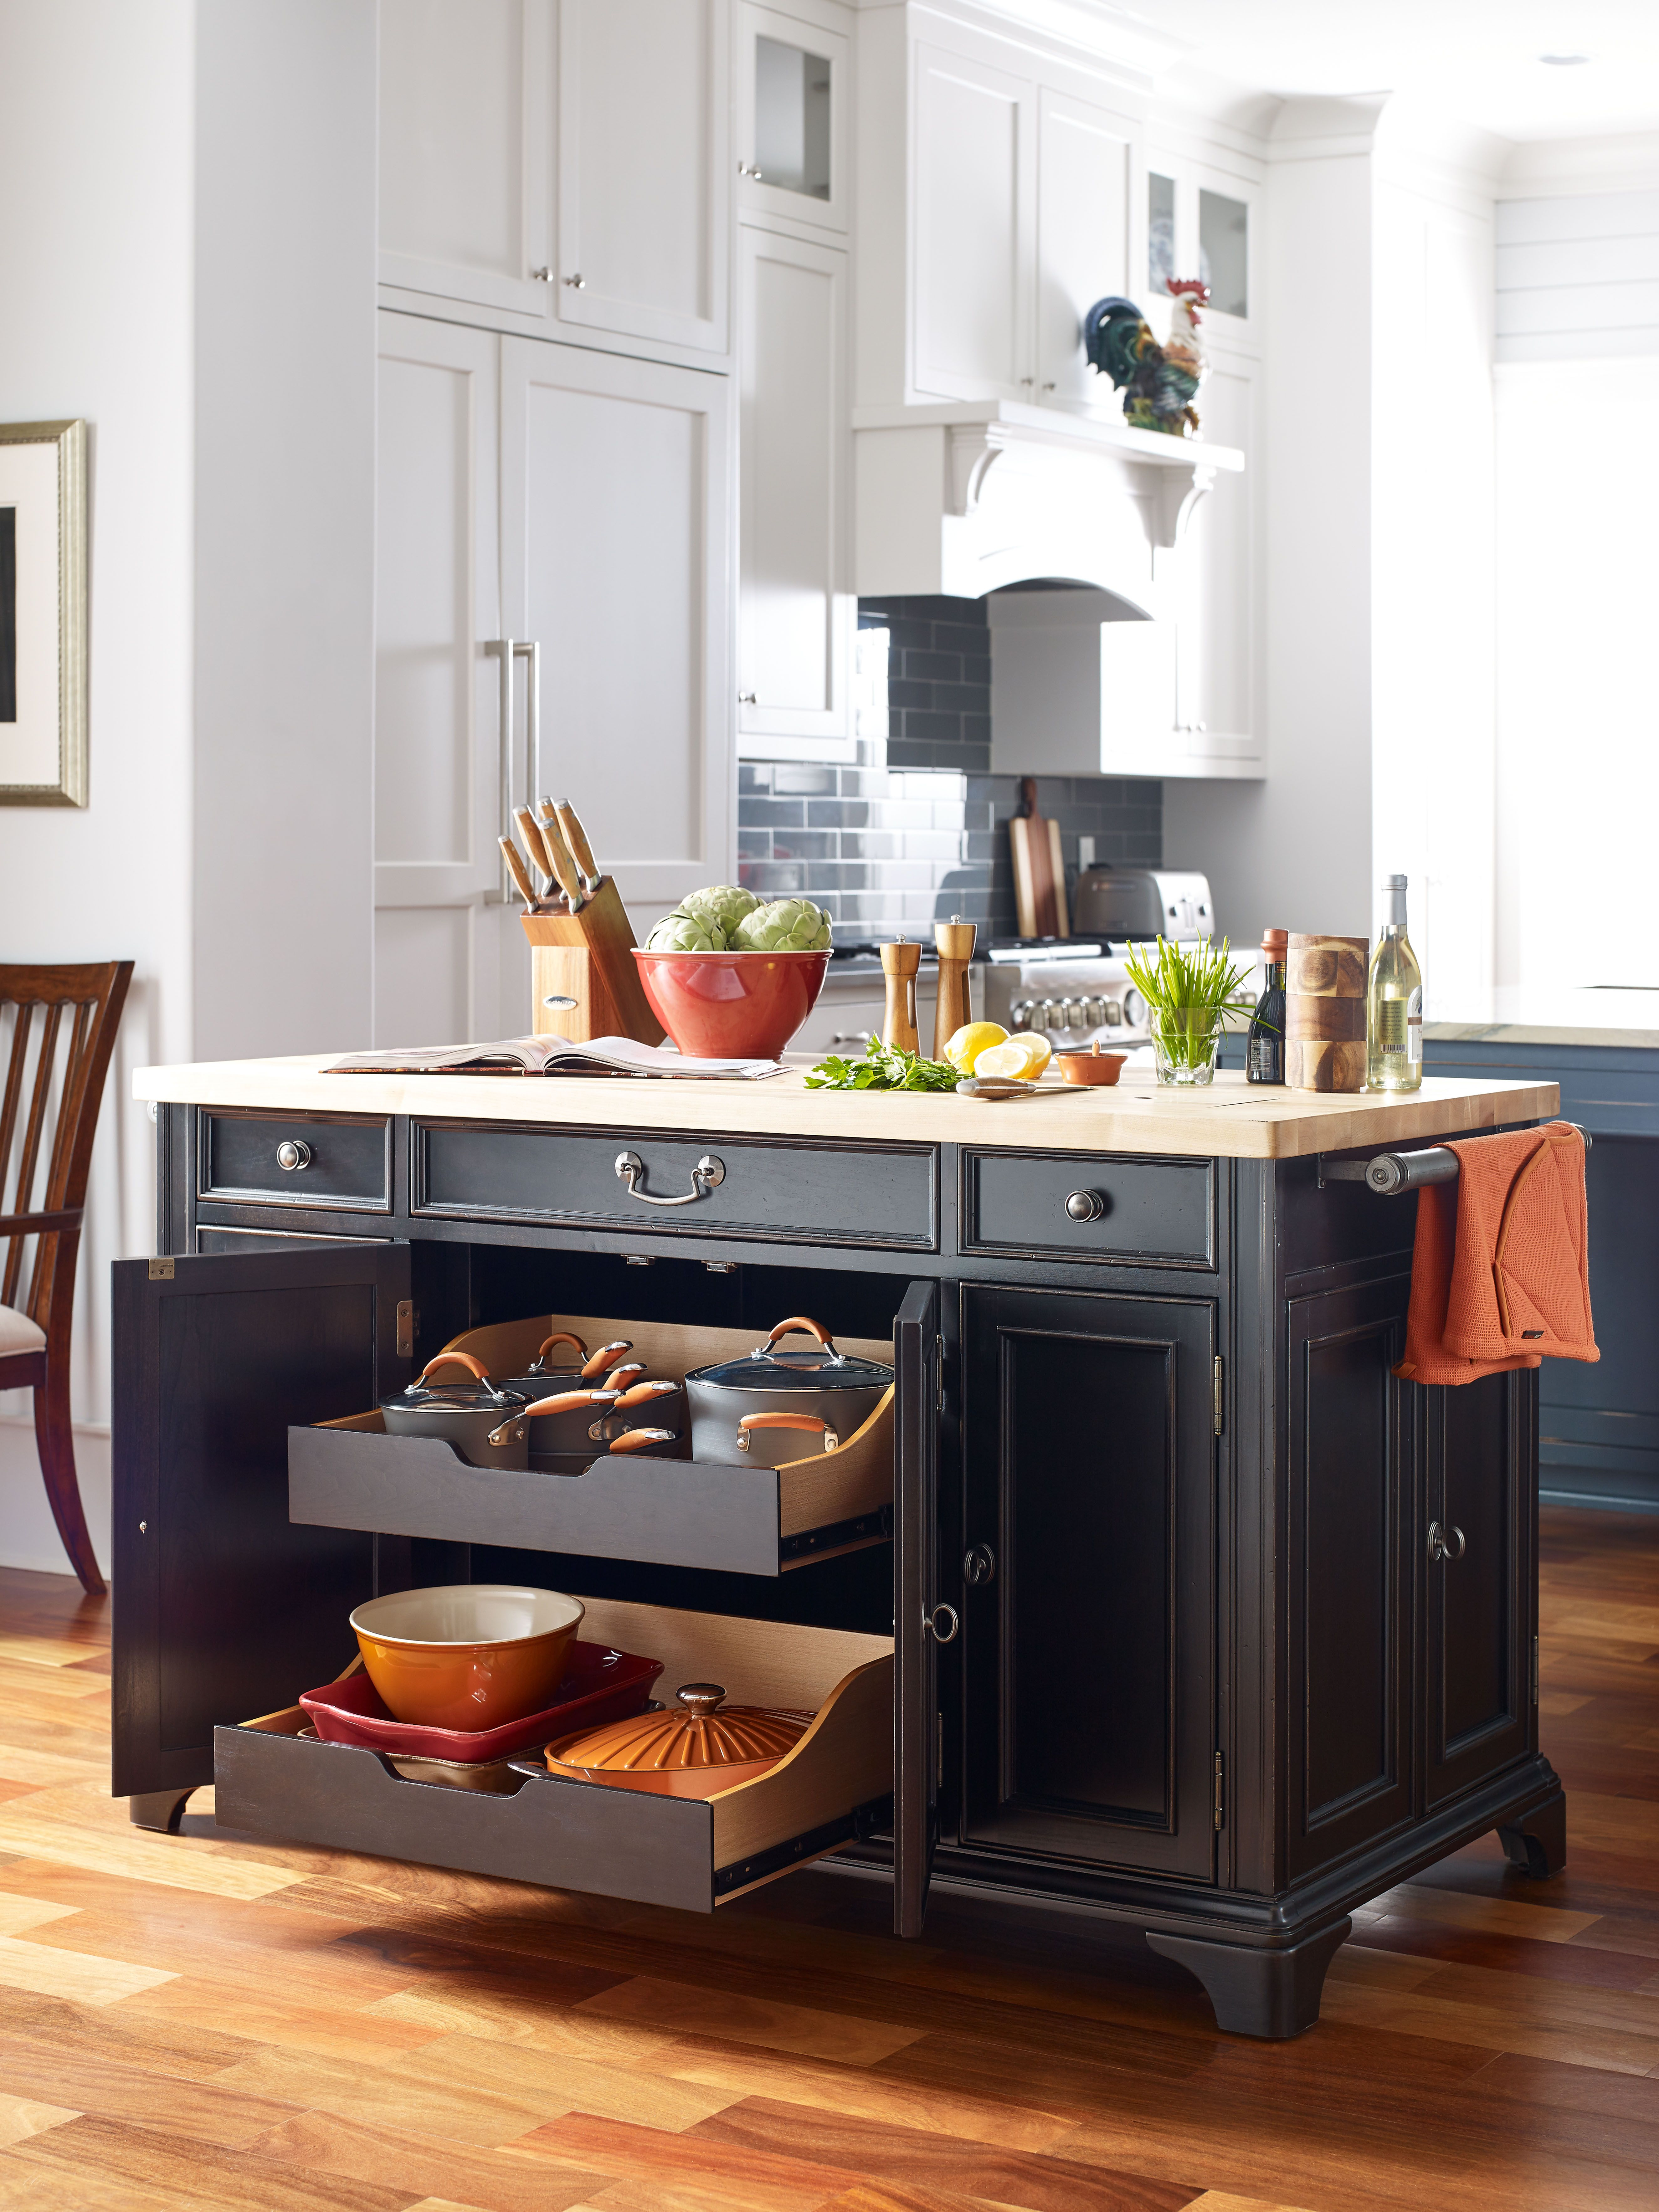 Rachael Ray Home Upstate Collection Kitchen Island Pots And Pans Storage By Legacy Clic